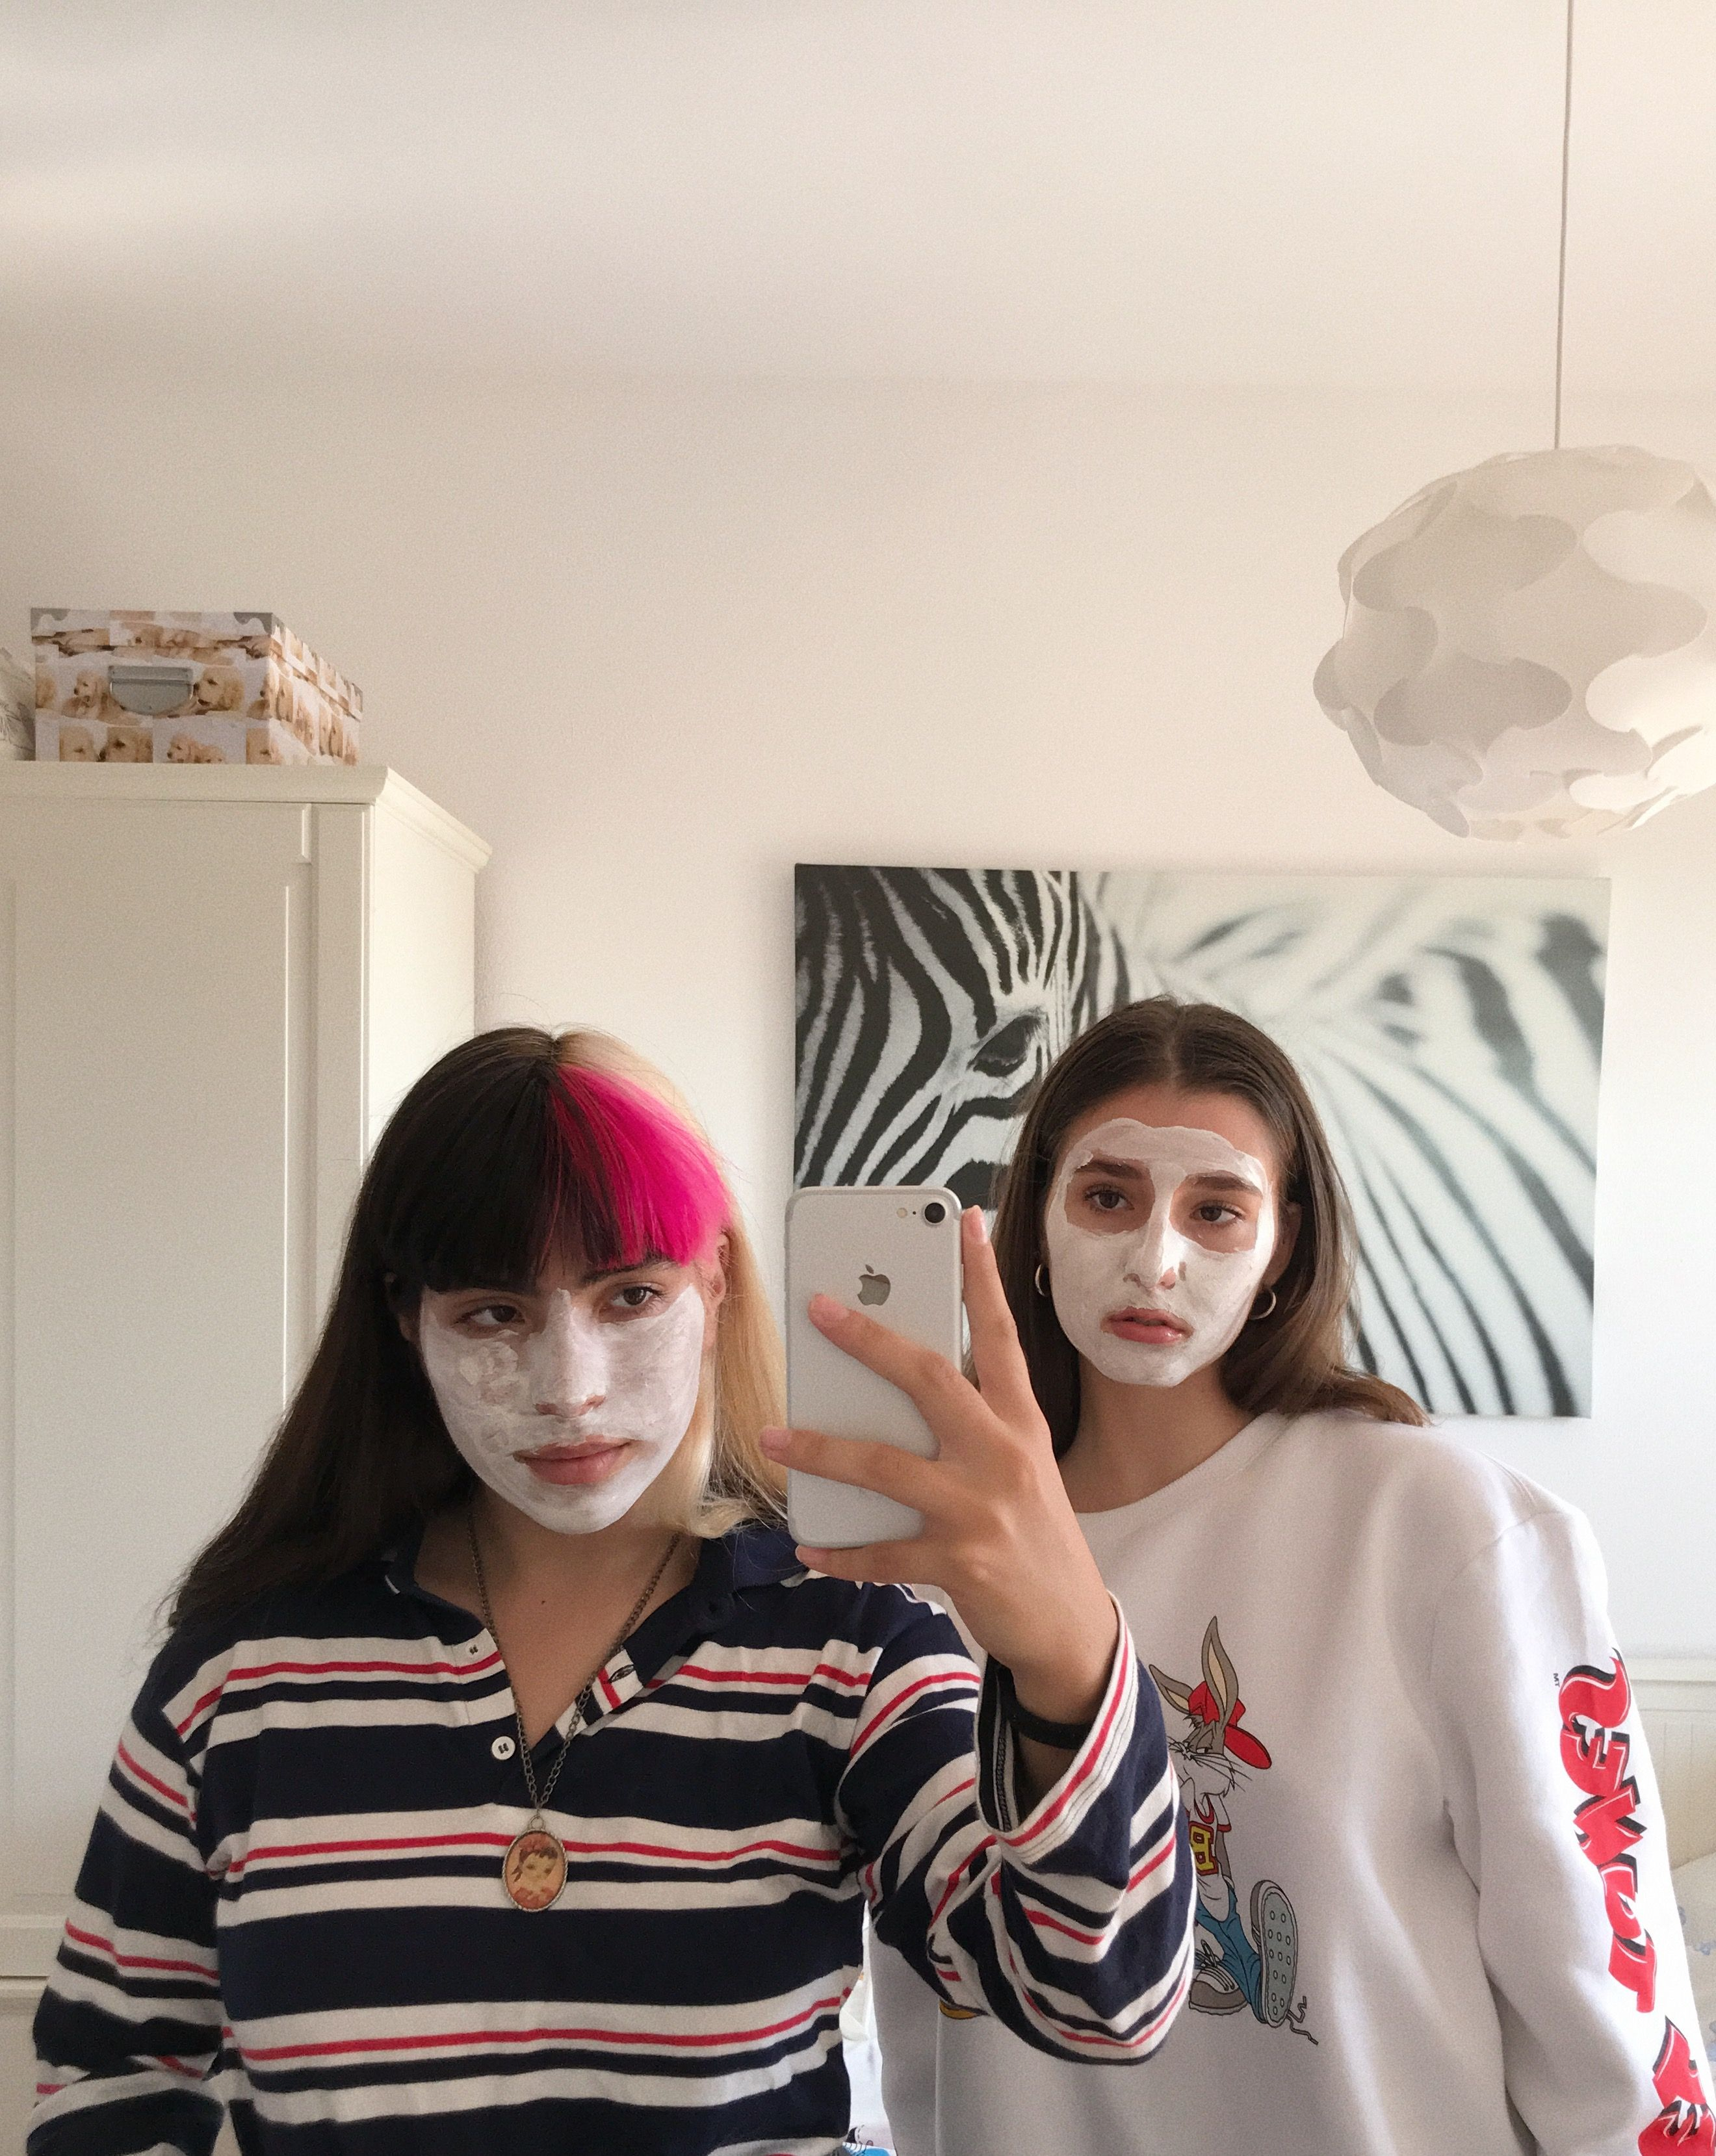 #friends #aesthetic #aestheticphotography  #white #mask #friendship #friendshipgoals